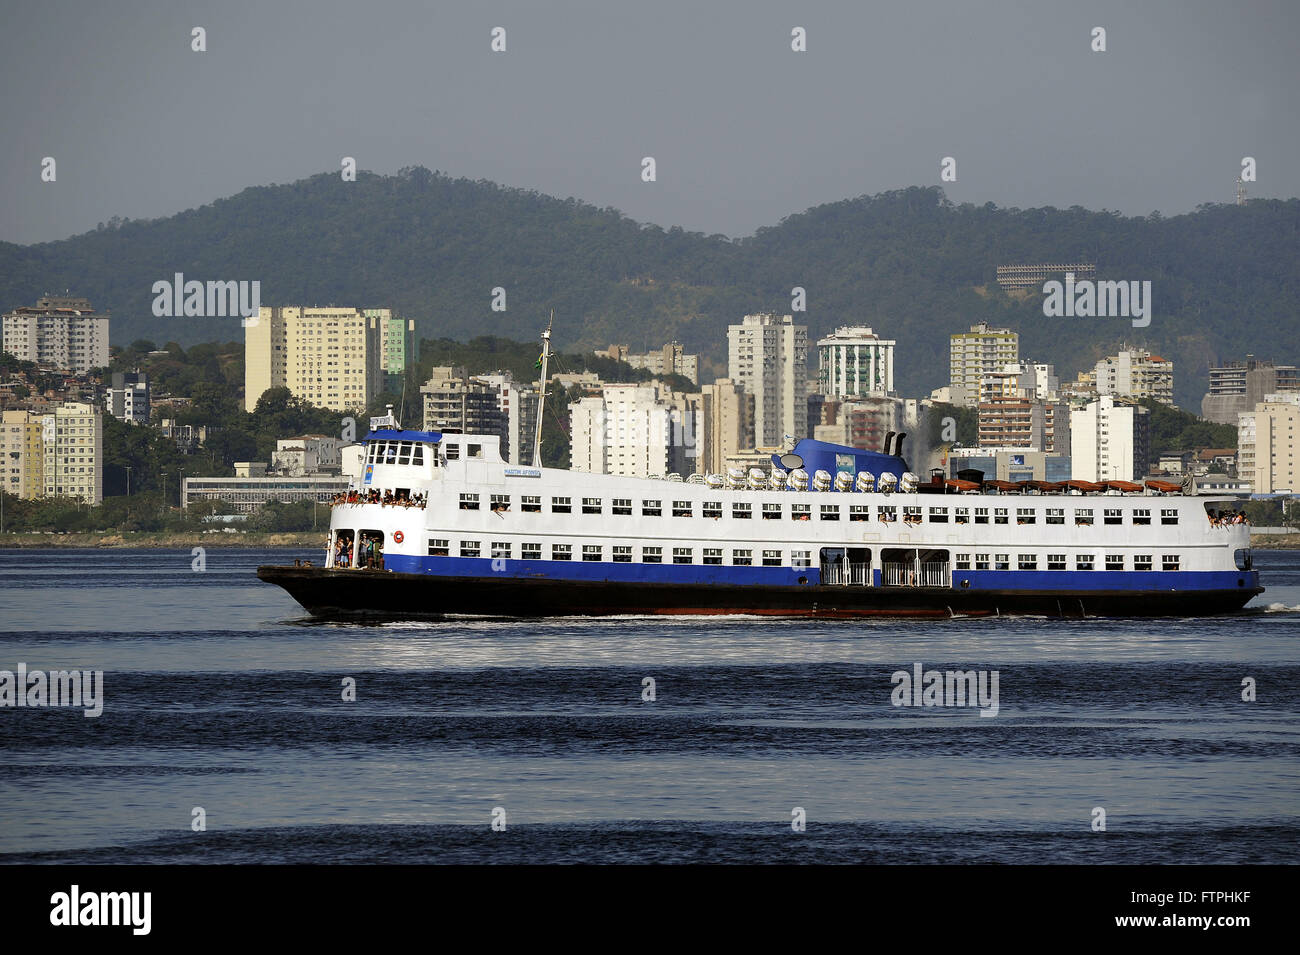 Barca making passenger service between Rio and Niteroi in Guanabara Bay - Stock Image